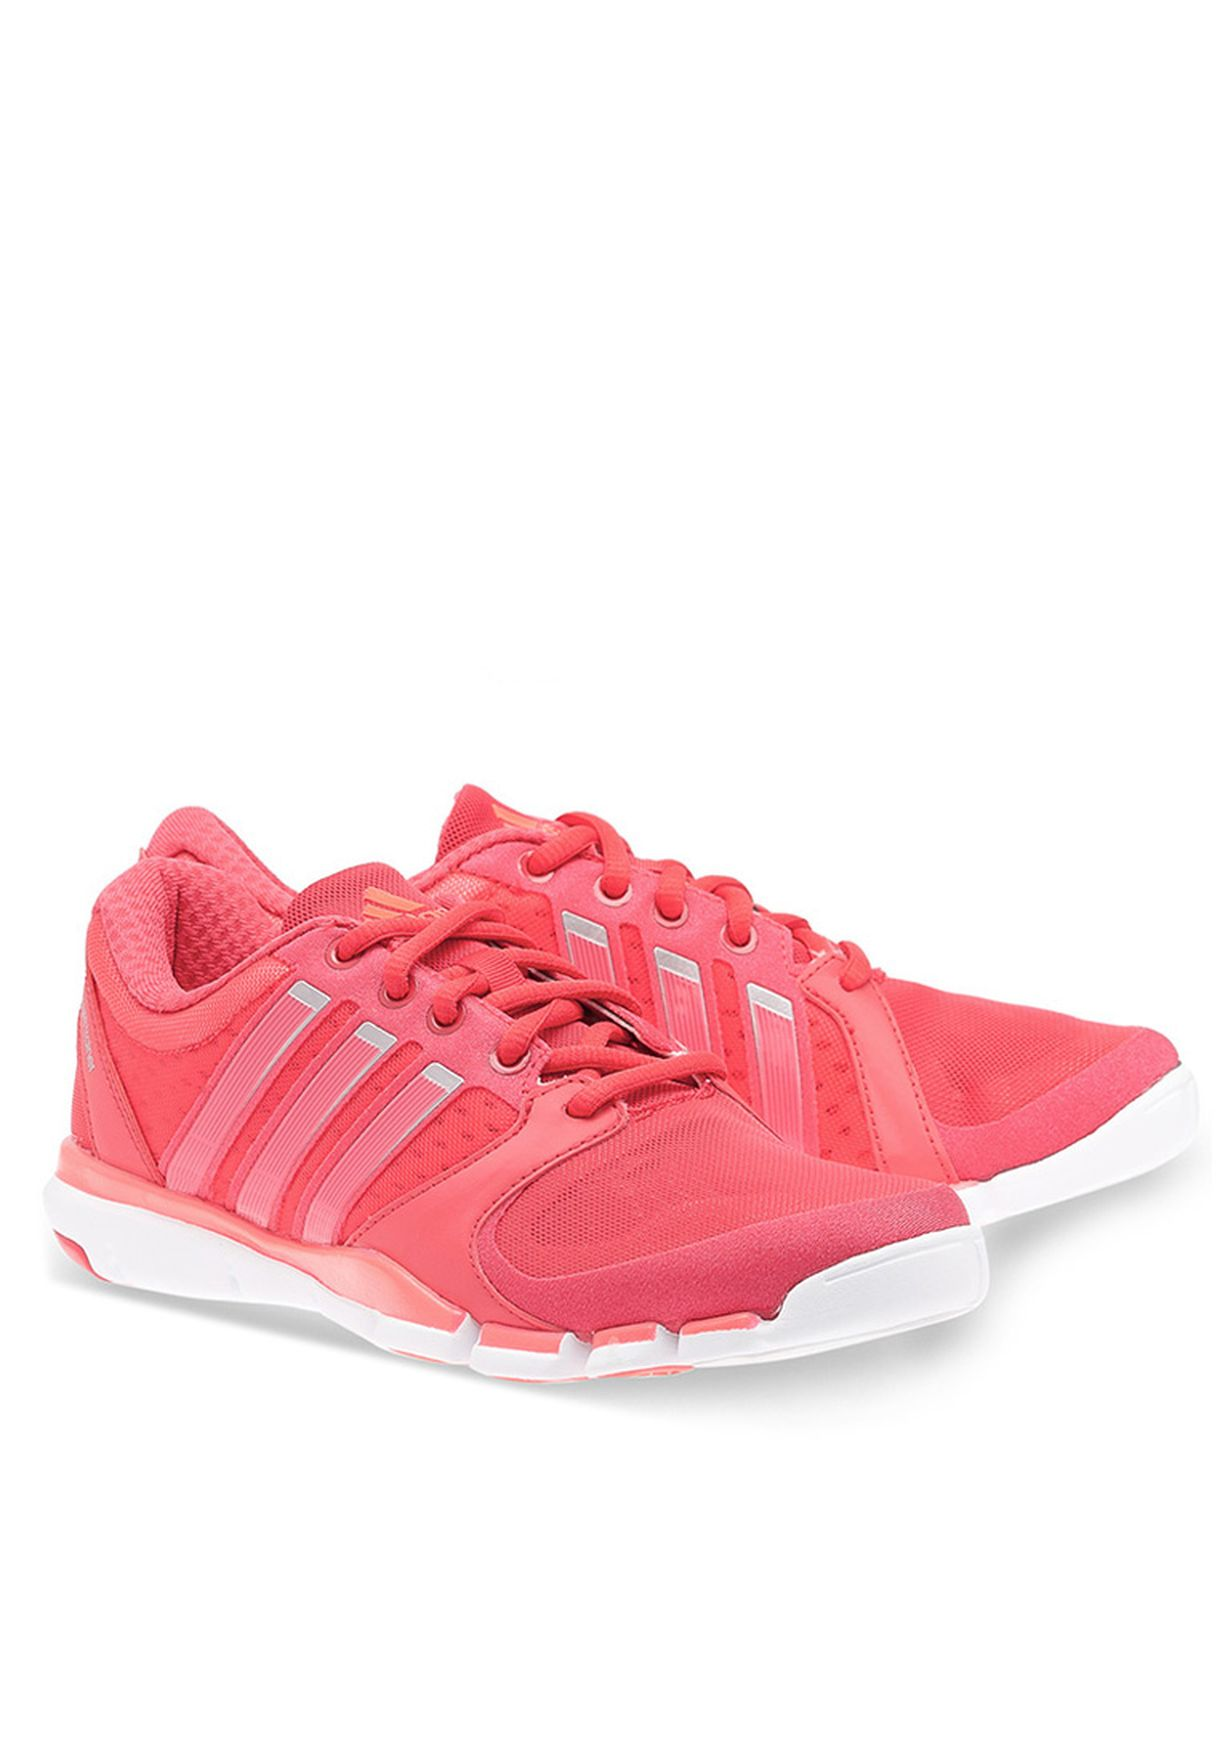 59bae462be4 Shop adidas red Adipure TR 360 CC Q23534 for Women in Kuwait ...